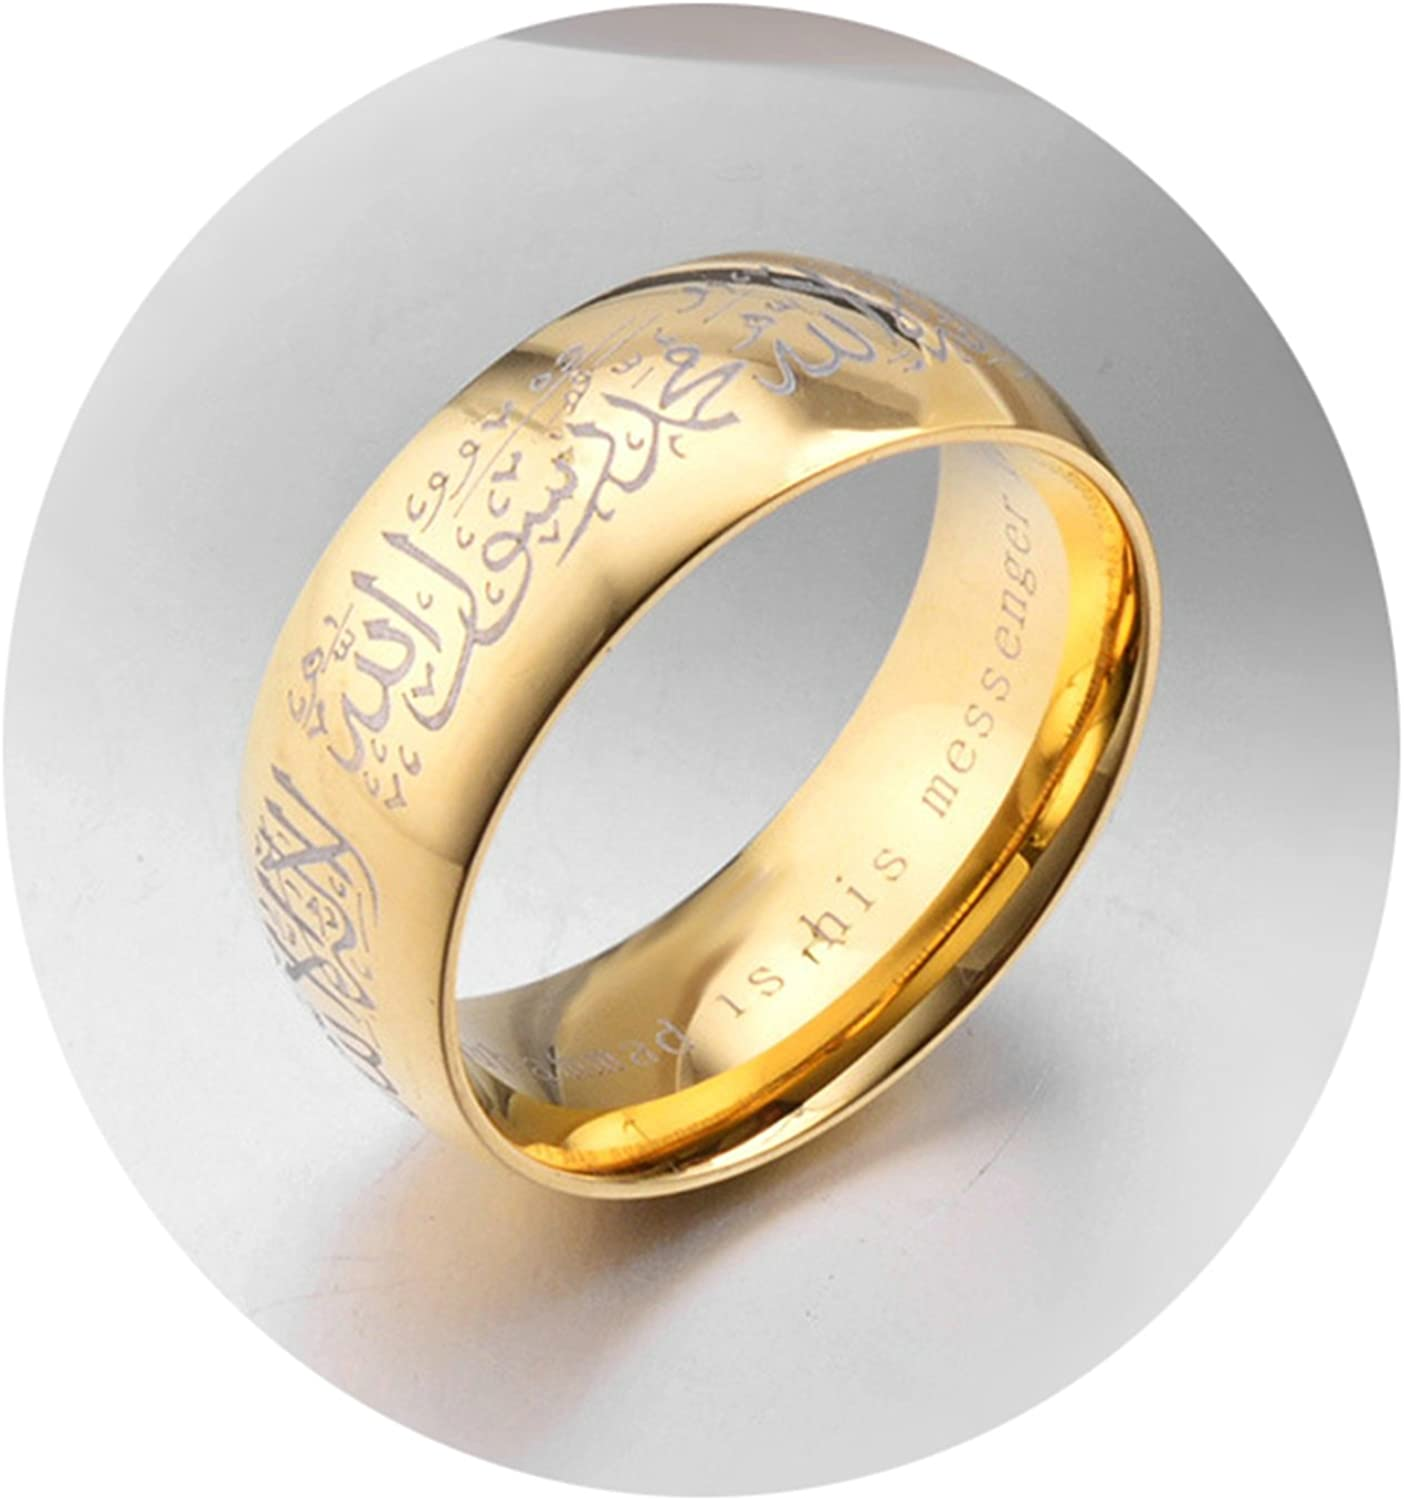 Bishilin Stainless Steel Rings Vintage Religious Retro Width 8 Mm Wedding Ring Men Gold Size 7